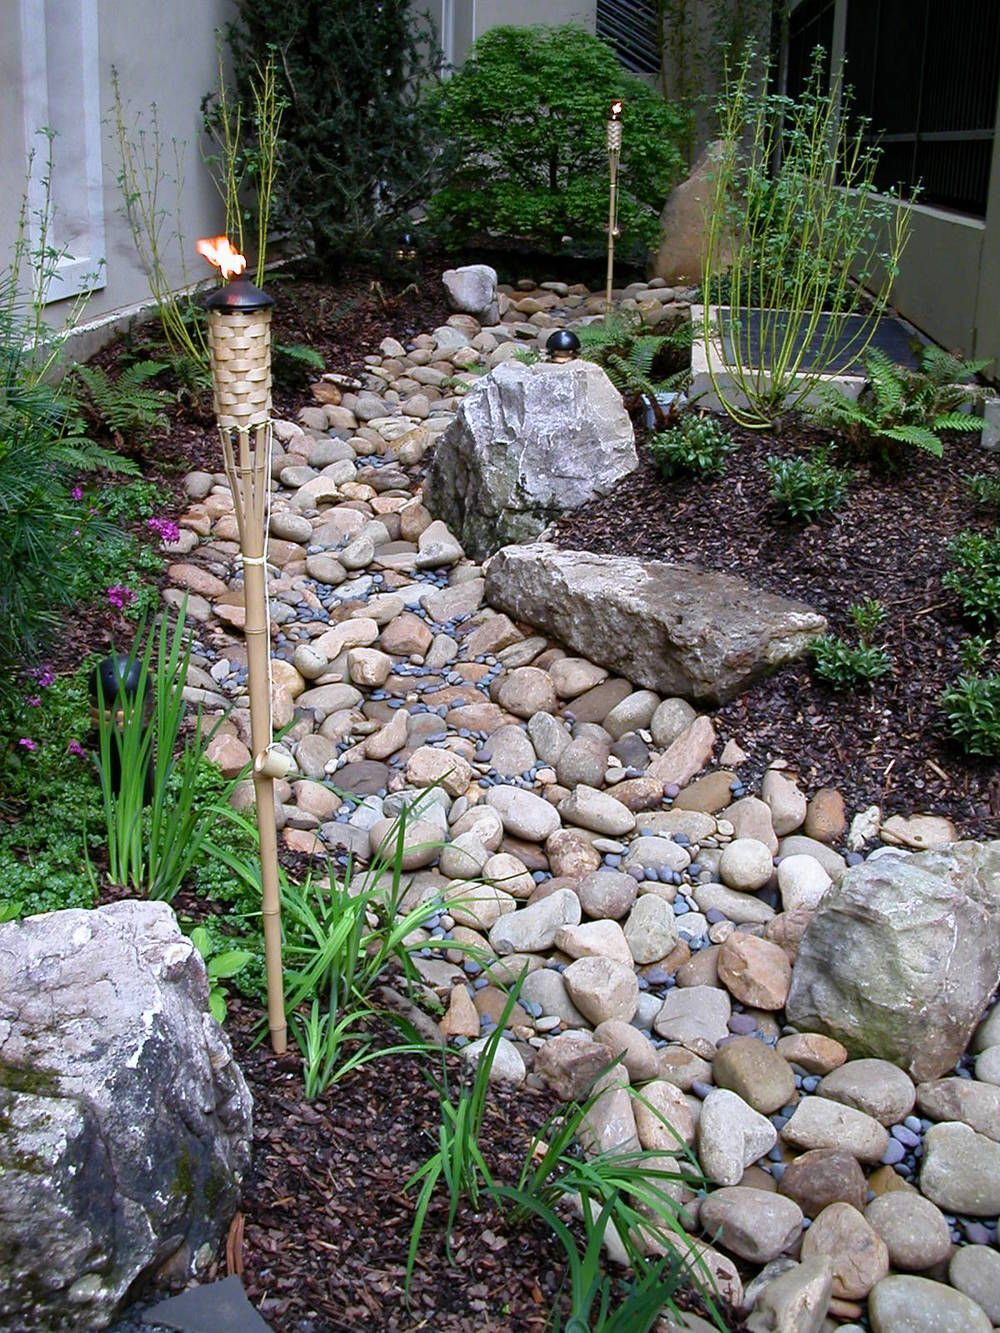 River Rock Design Ideas river rock dry creek swale landscaping a dry river bed design ideas pictures 25 Gorgeous Dry Creek Bed Design Ideas